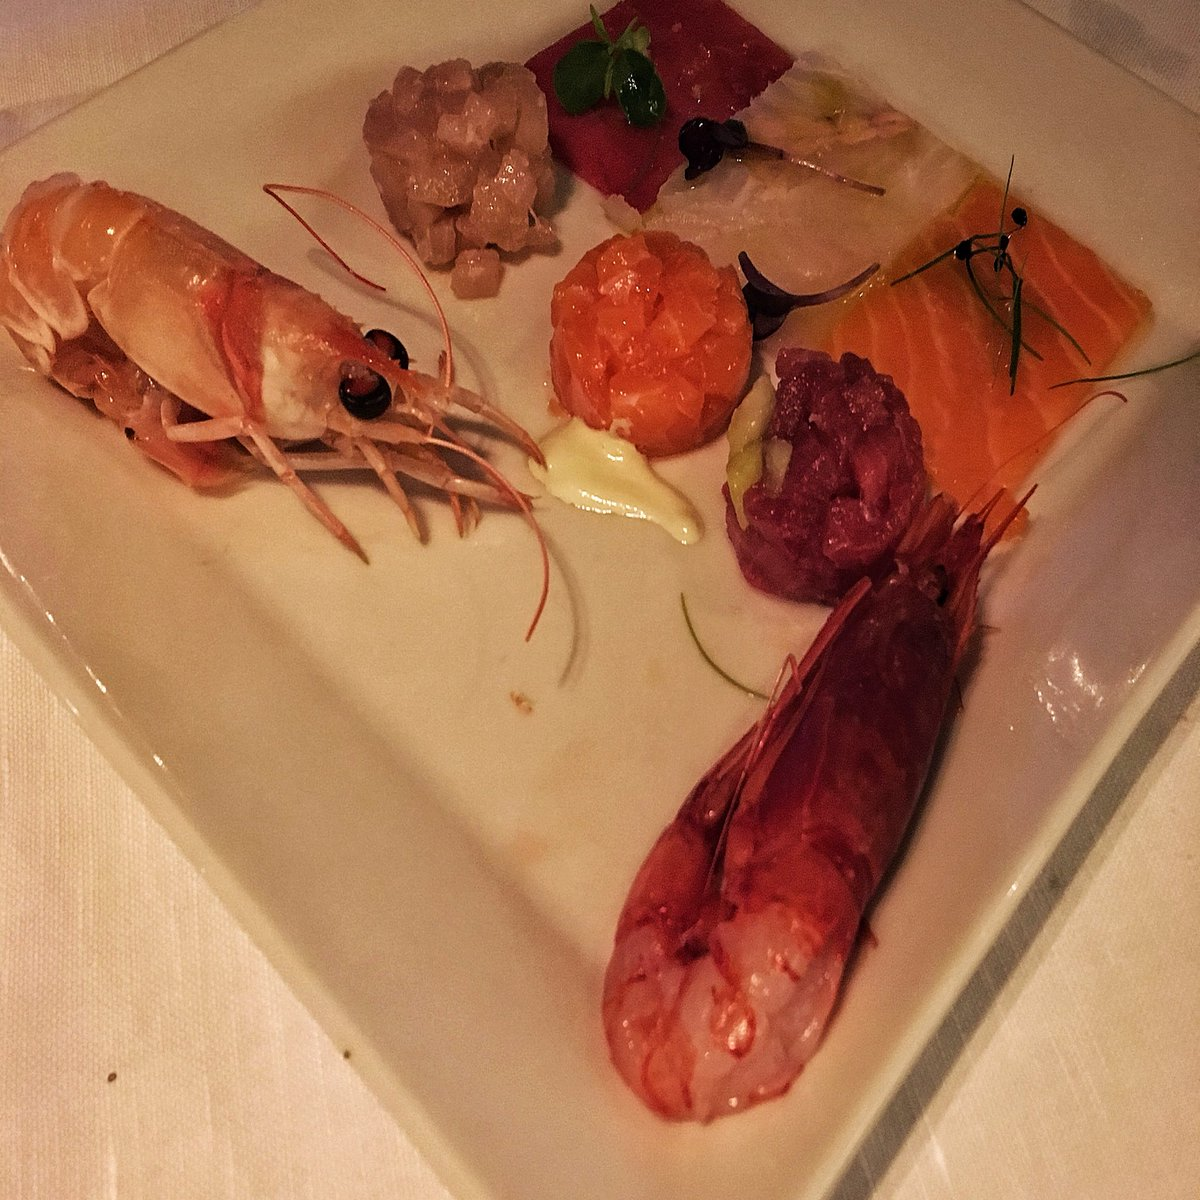 Seafood, eat food - crudo Pierluigi is little rock pool of Rome pleasure, as served at the late, great fish resto Pierluigi. Now to dive in!